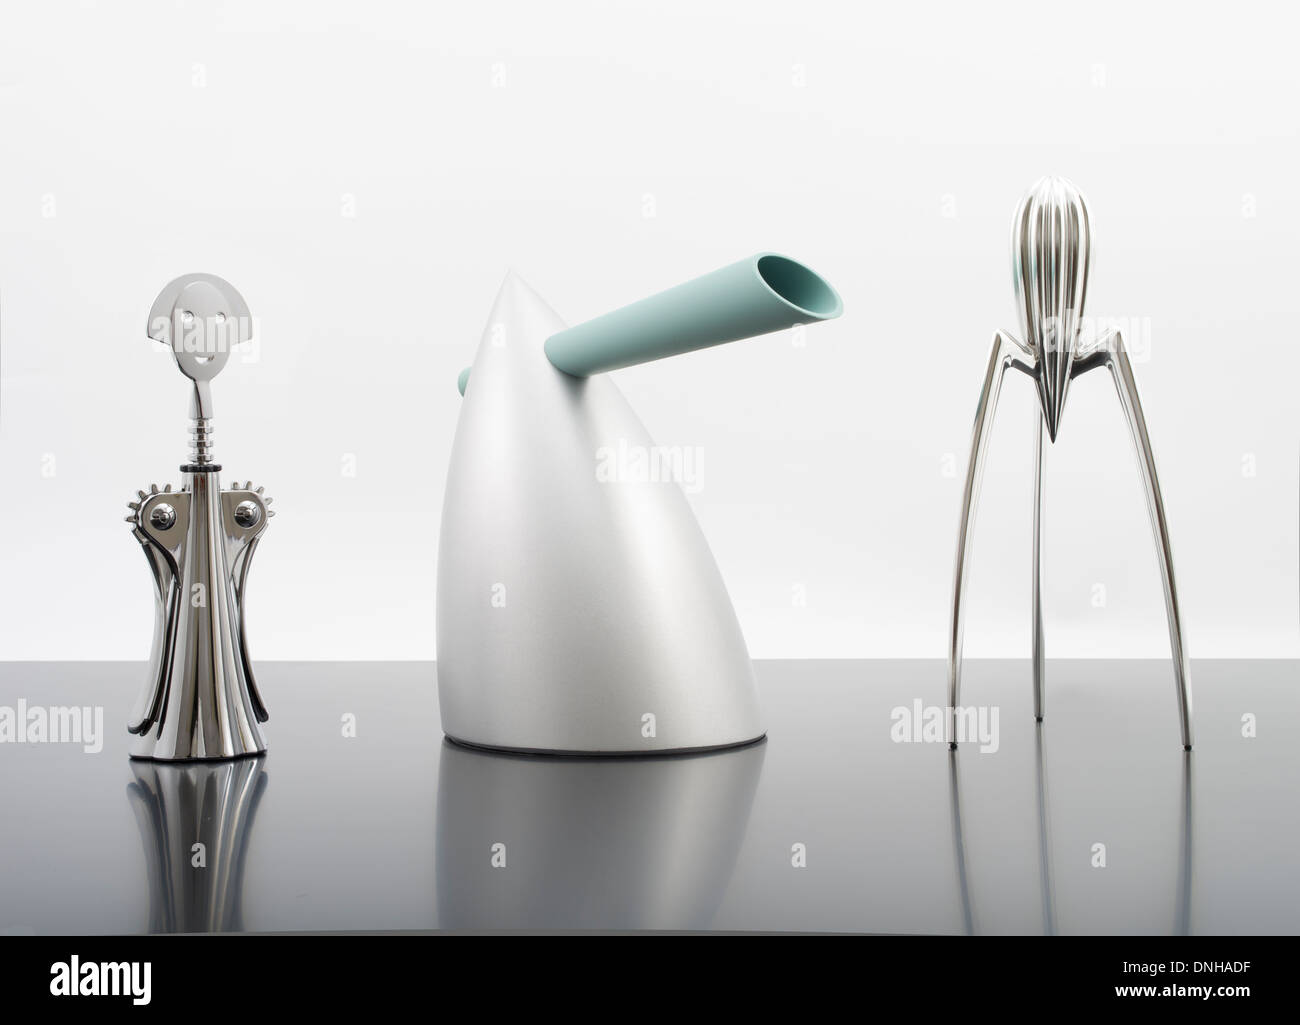 Anna G. Corkscrew, HOT BERTAA / Water Kettle, Alessi Juicy Salif Citrus Squeezer  Designed by Philippe Starck for Alessi. - Stock Image